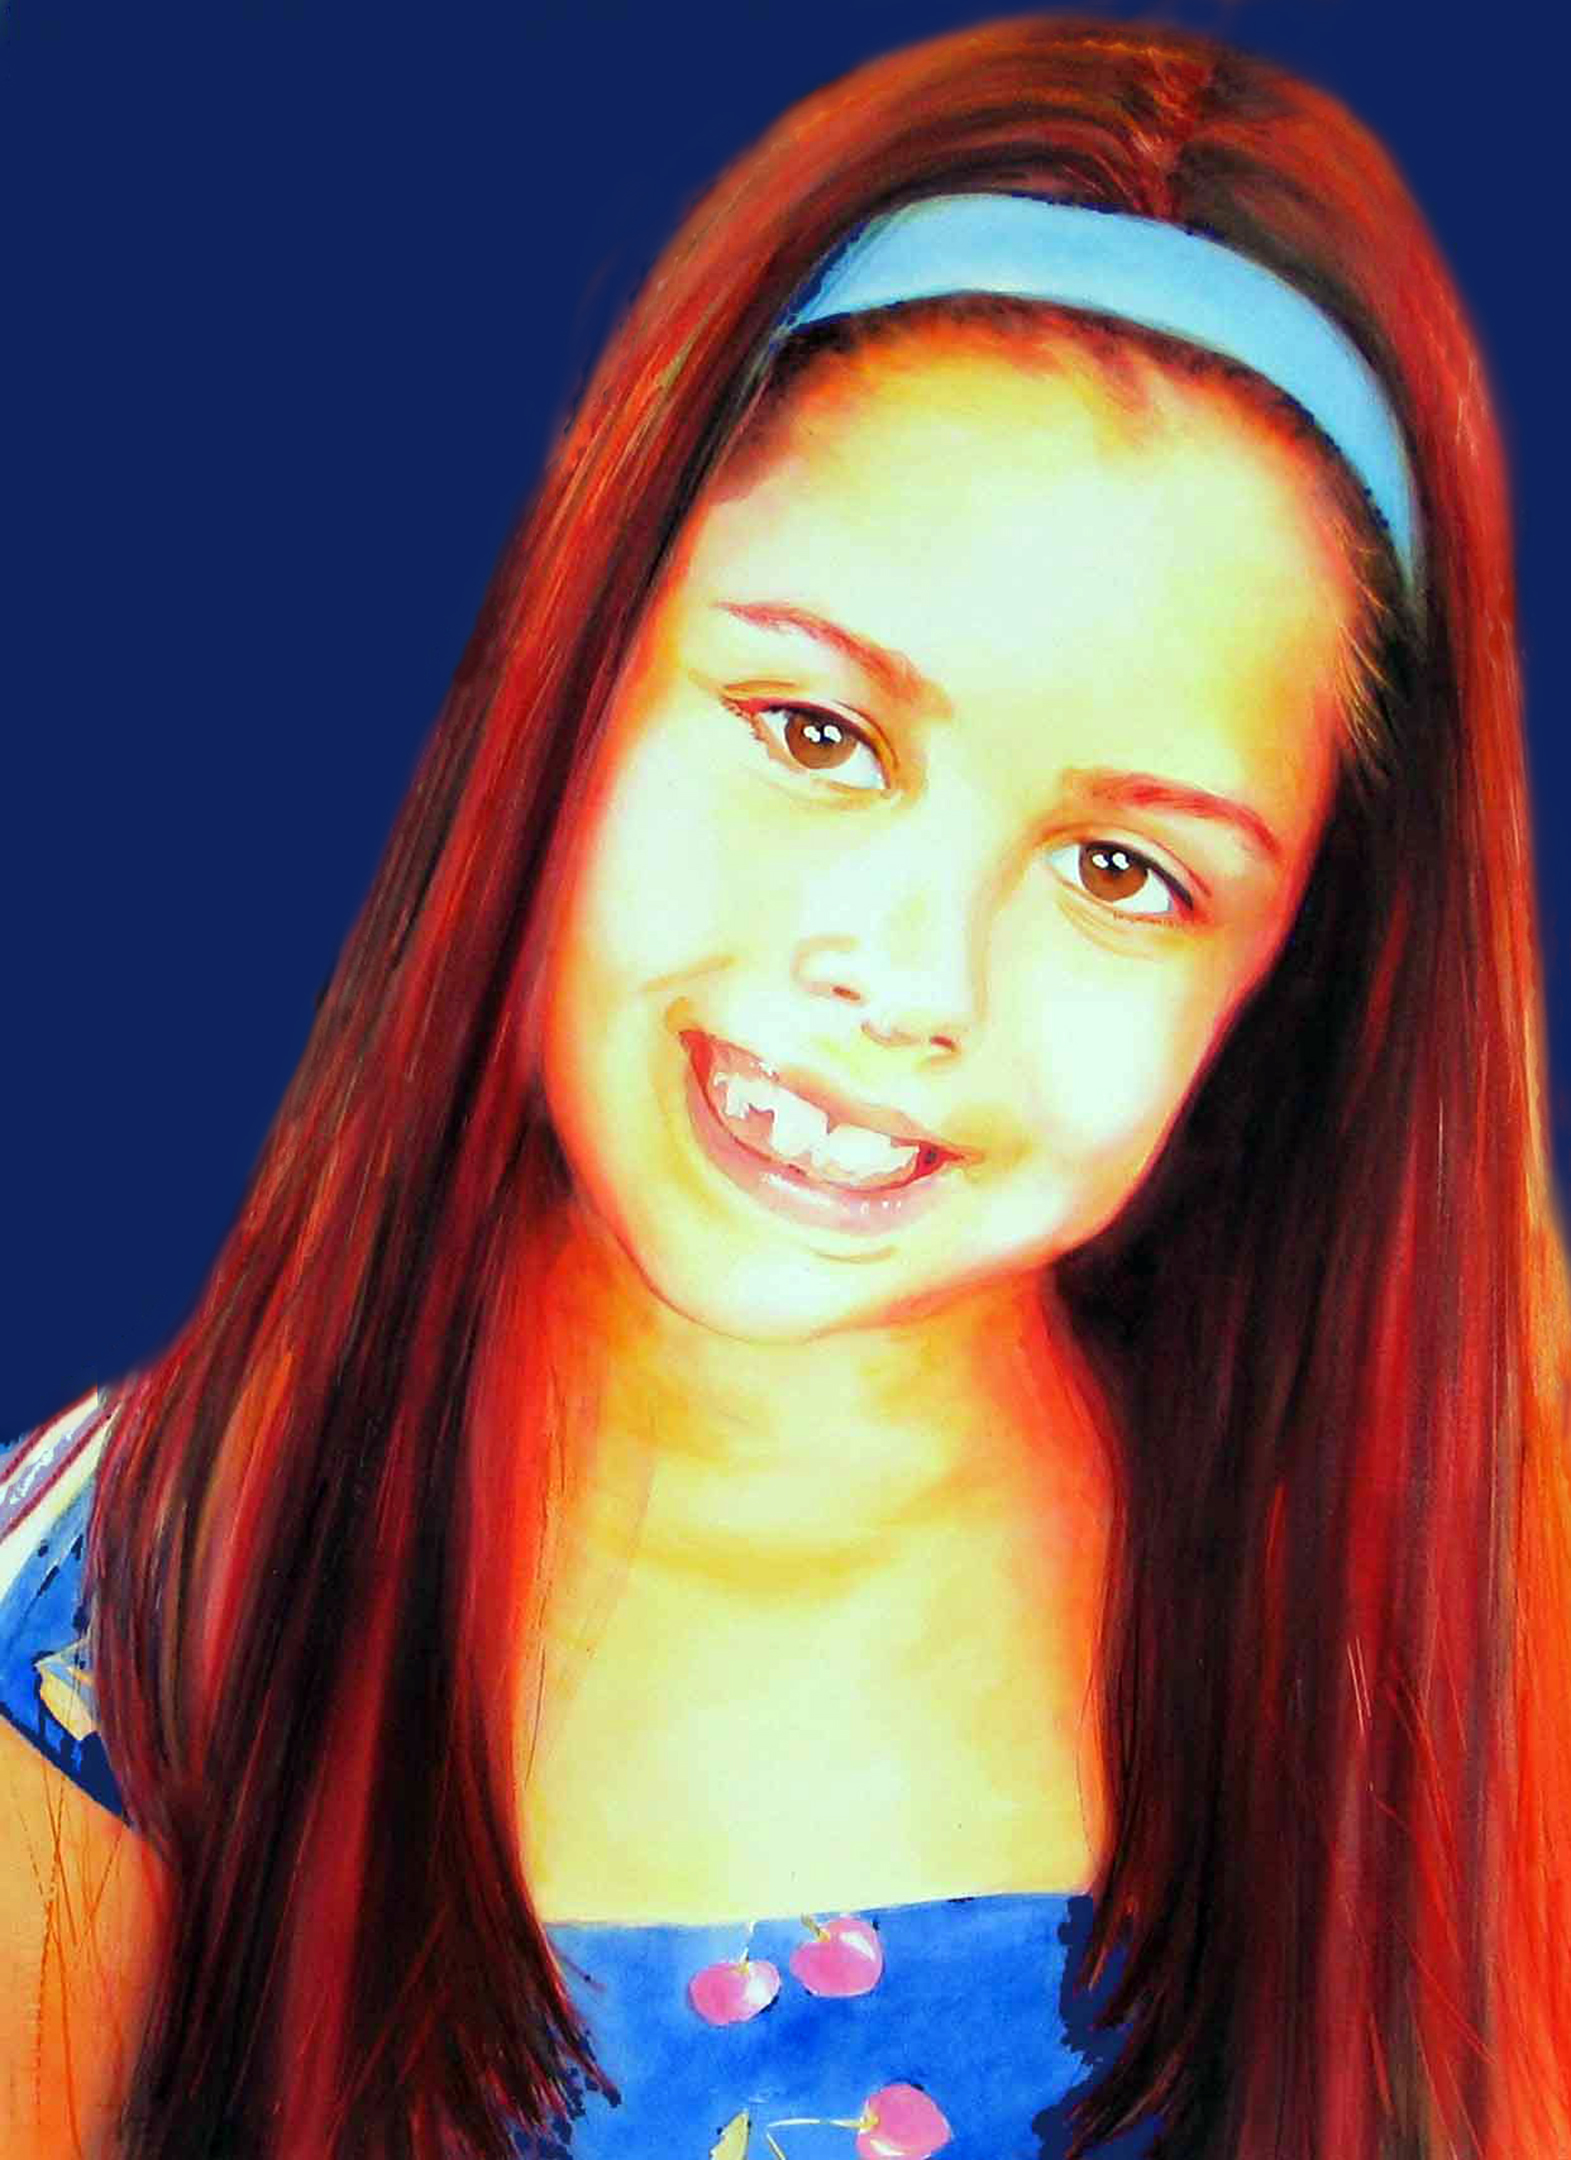 Image of Kayla with Darker Blue Background